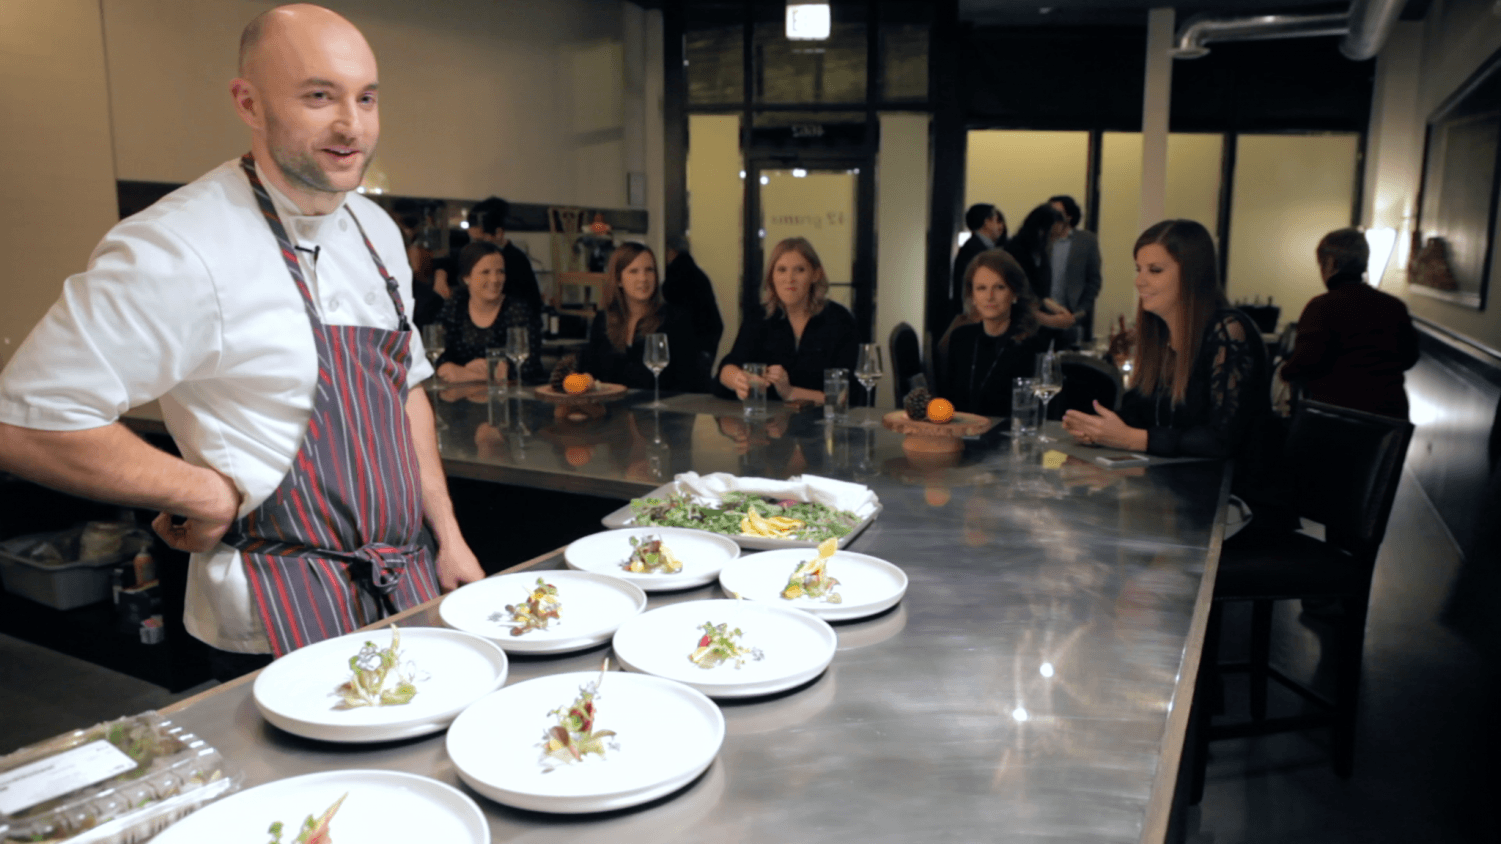 Chef Jake Bickelhaupt is his high-end restaurant 42 Grams located in Uptown. His journey to create this restaurant and become an elite chef are the subjects of this film.  (Photo courtesy of 42 Grams)